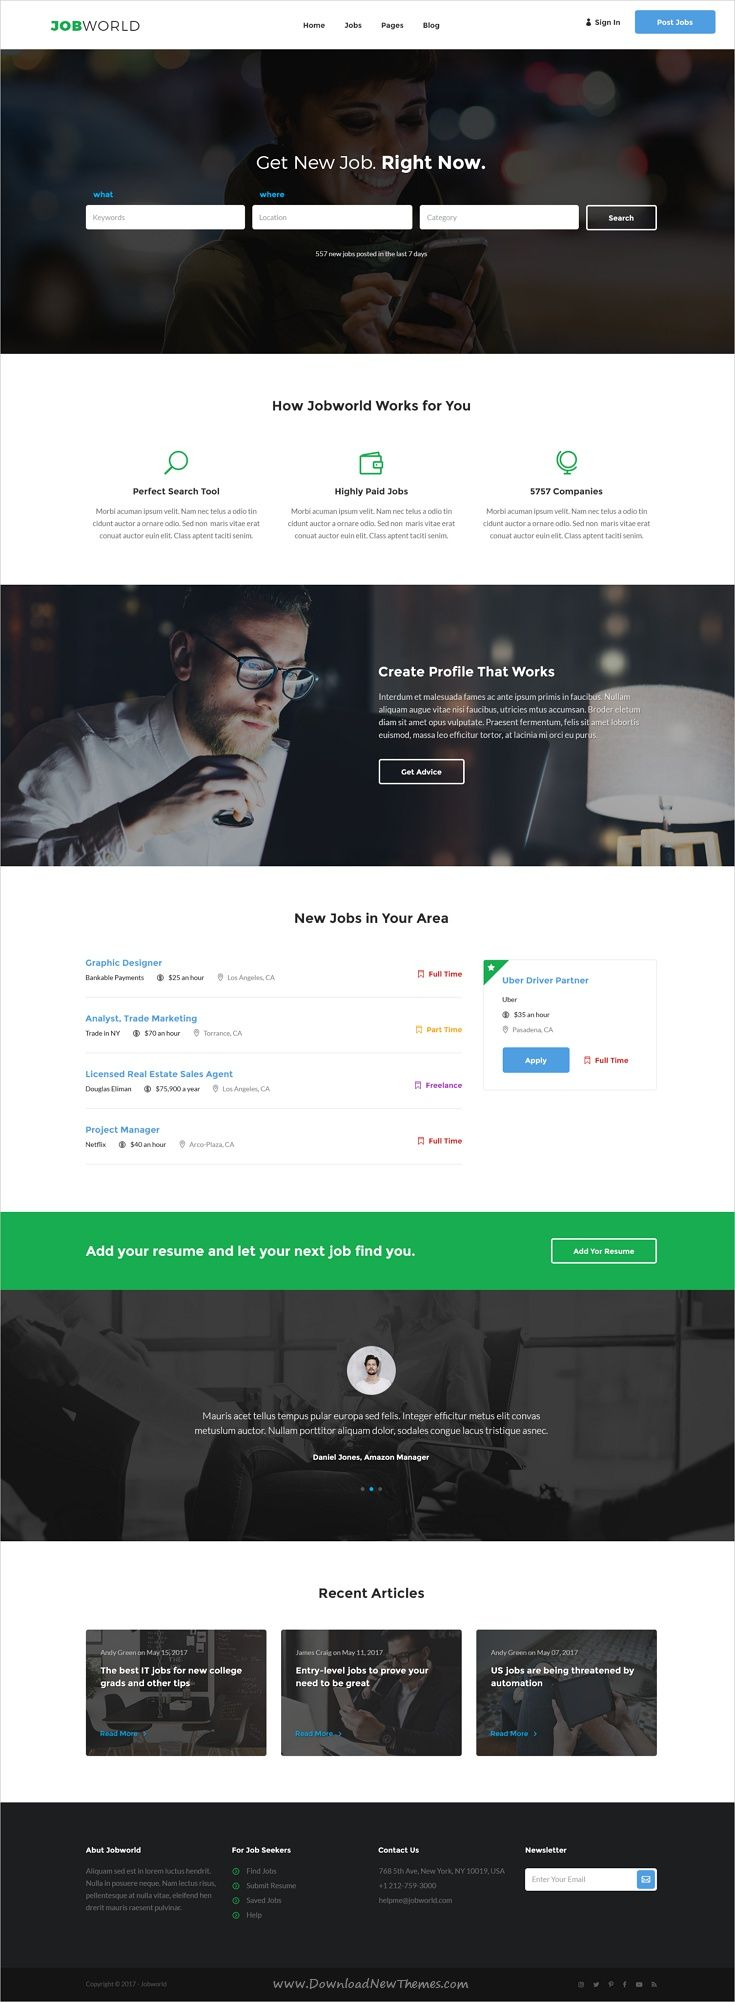 Job World is clean and modern design #Photoshop template for #Job portals website with 22 layered PSD files download now > https://themeforest.net/item/job-portal-template-job-world/19962047?ref=Datasata